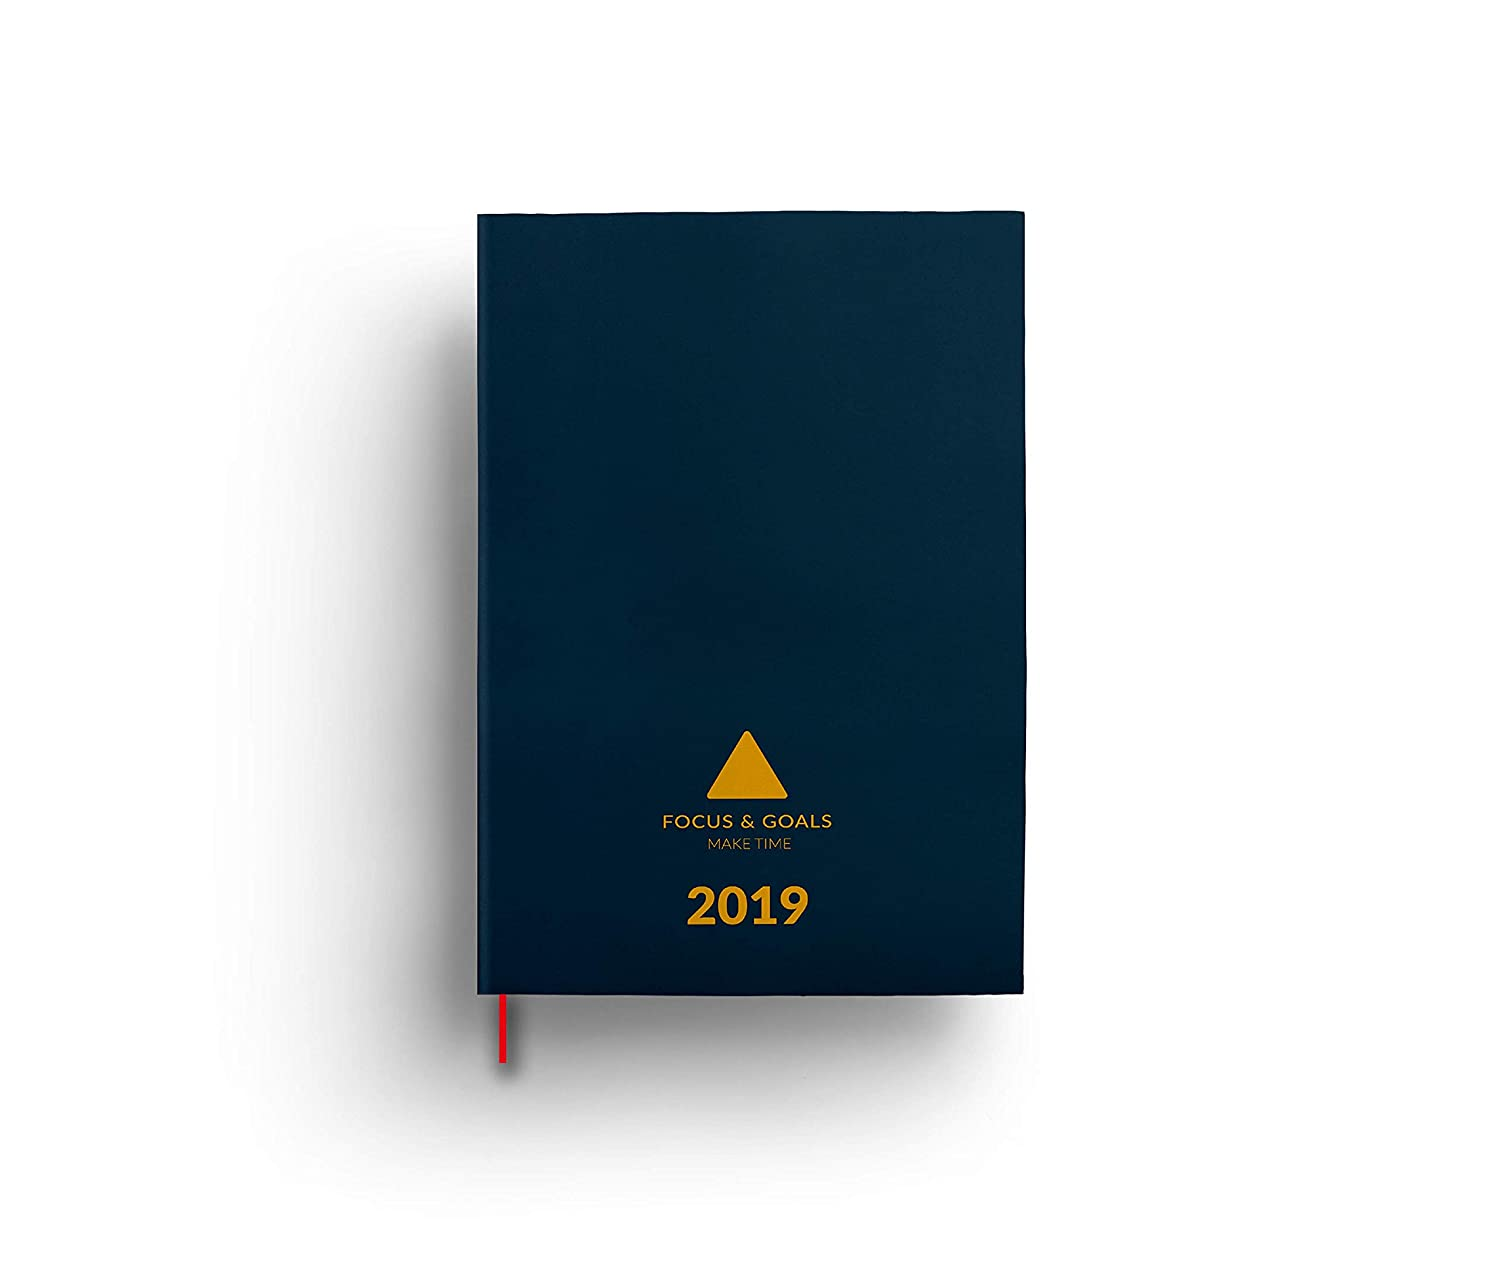 Agenda Planificador Focus and Goals 2019: Amazon.es: Oficina ...